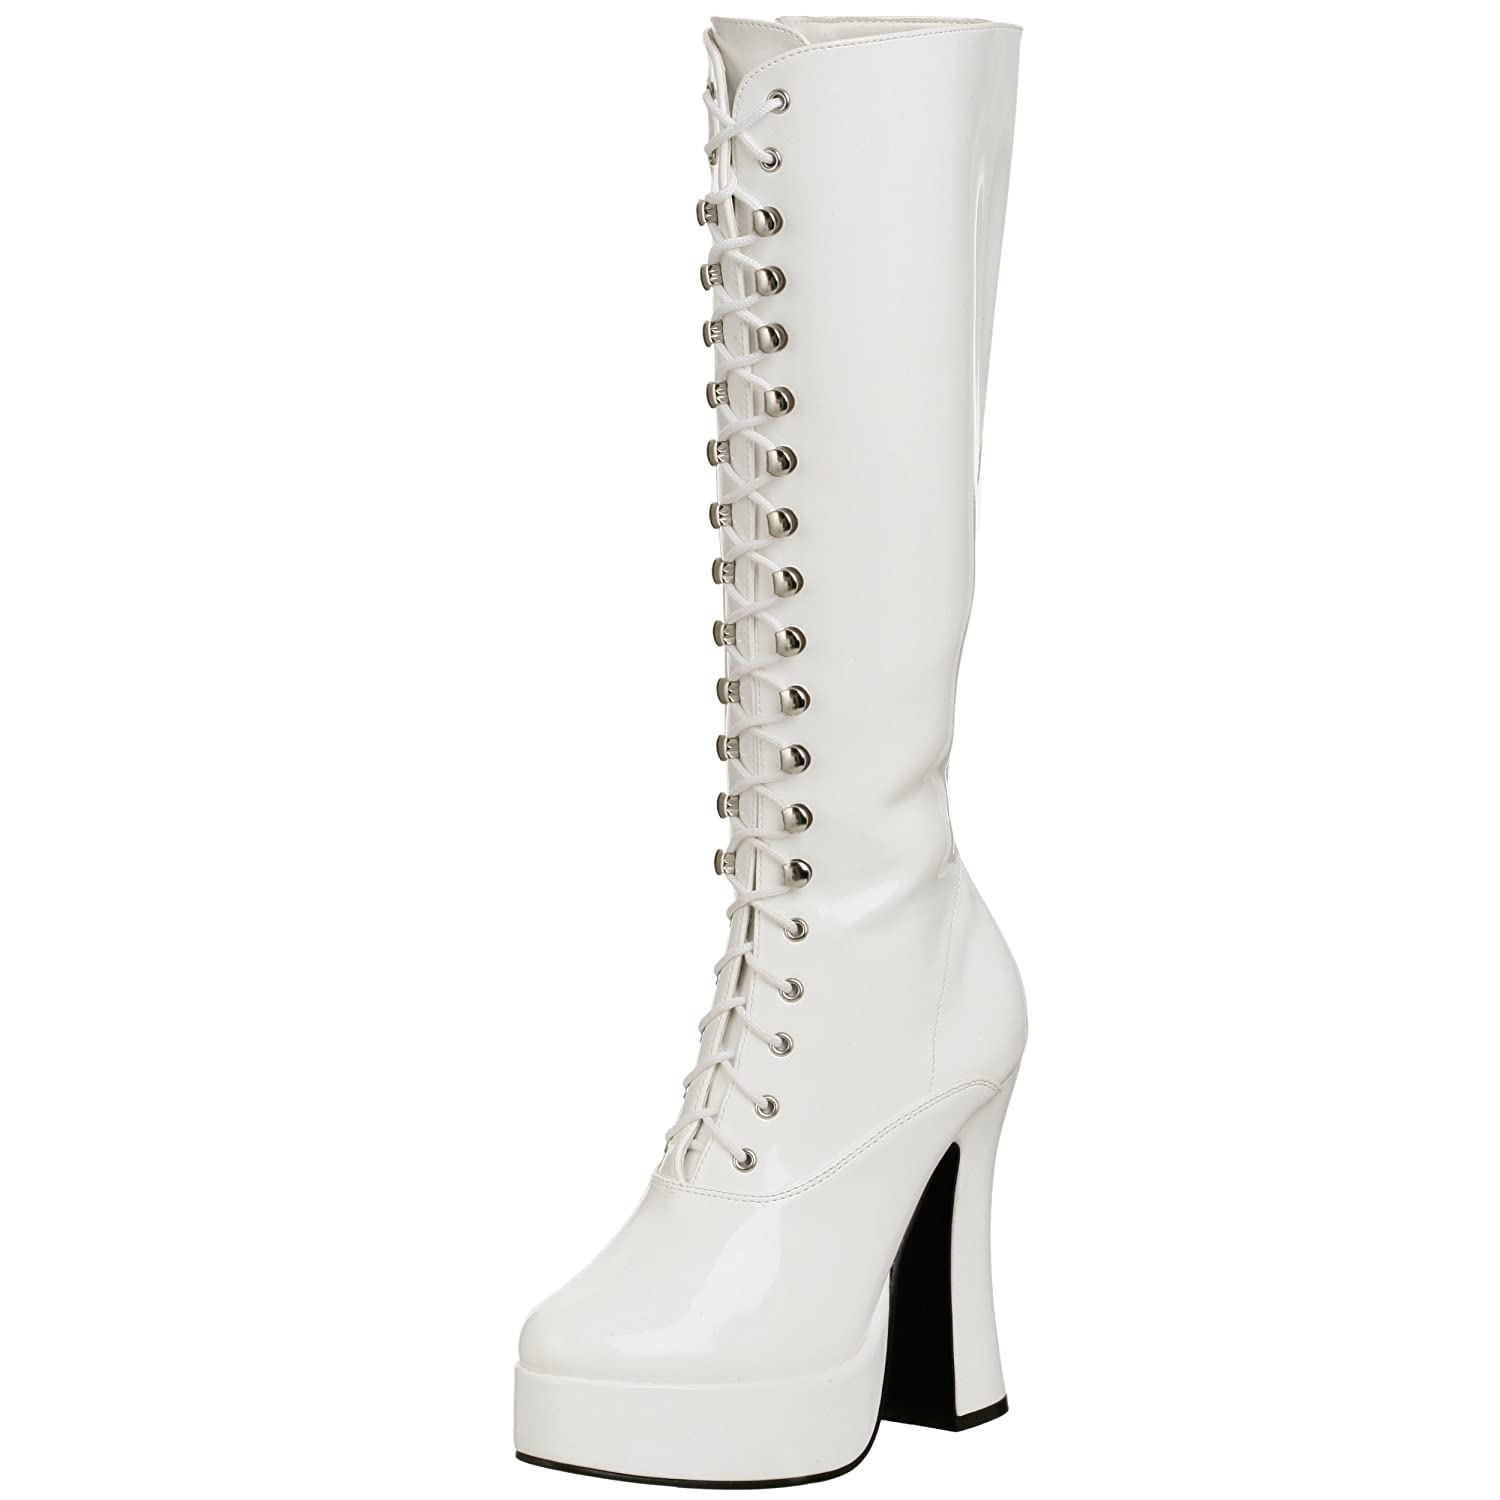 Pleaser Women's Electra-2020 Boot B00125MS7K 14 B(M) US|White Patent